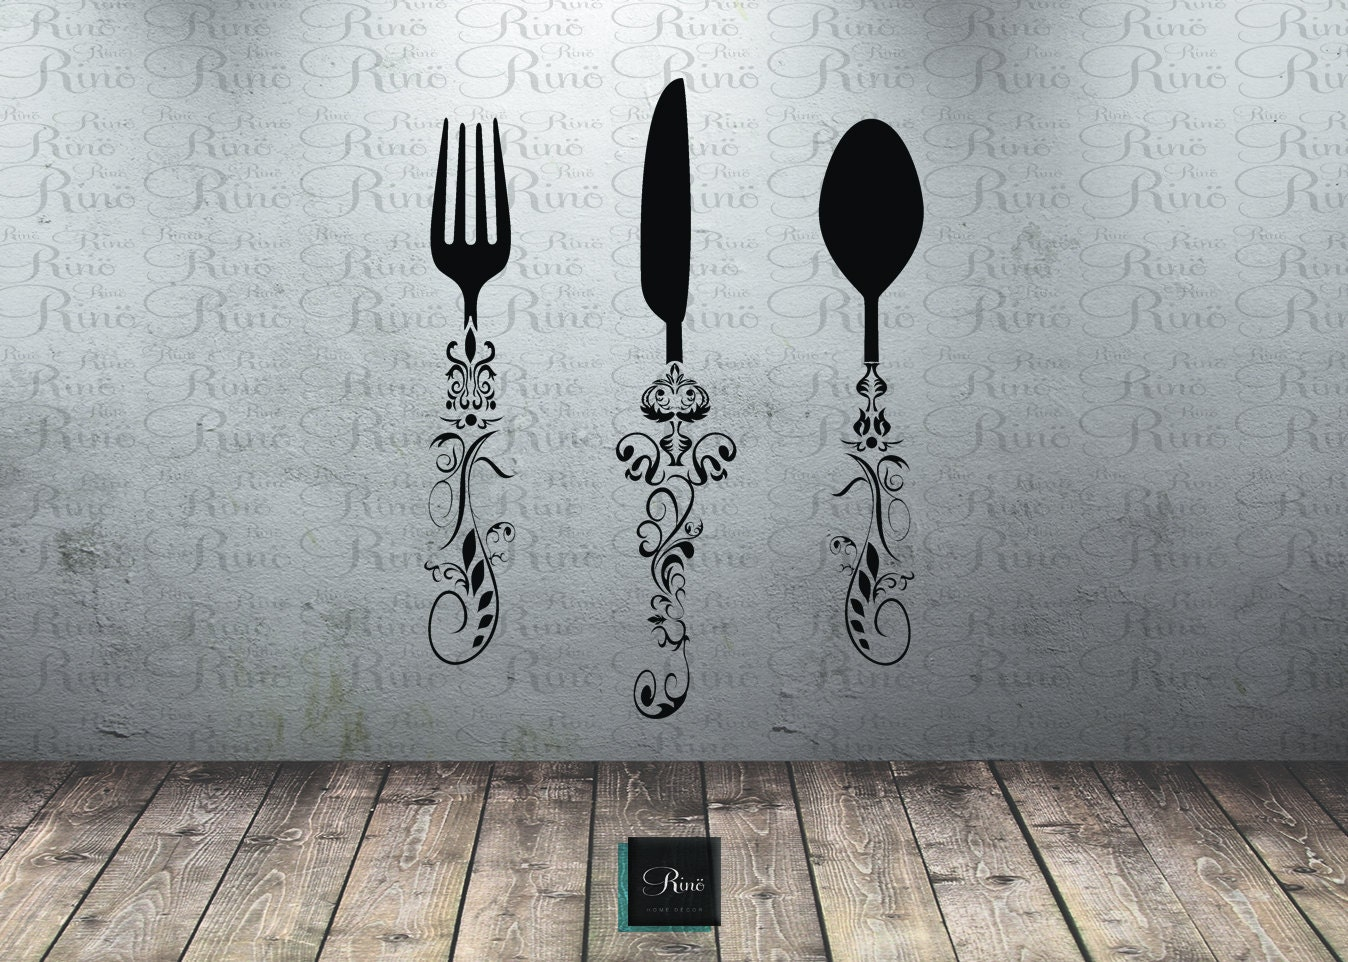 Utensil decals 5ft kitchen wall decal knife spoon fork wall utensil decals 5ft kitchen wall decal knife spoon fork wall decal dining room large wall art decal vinyl sticker kitchen decor amipublicfo Choice Image